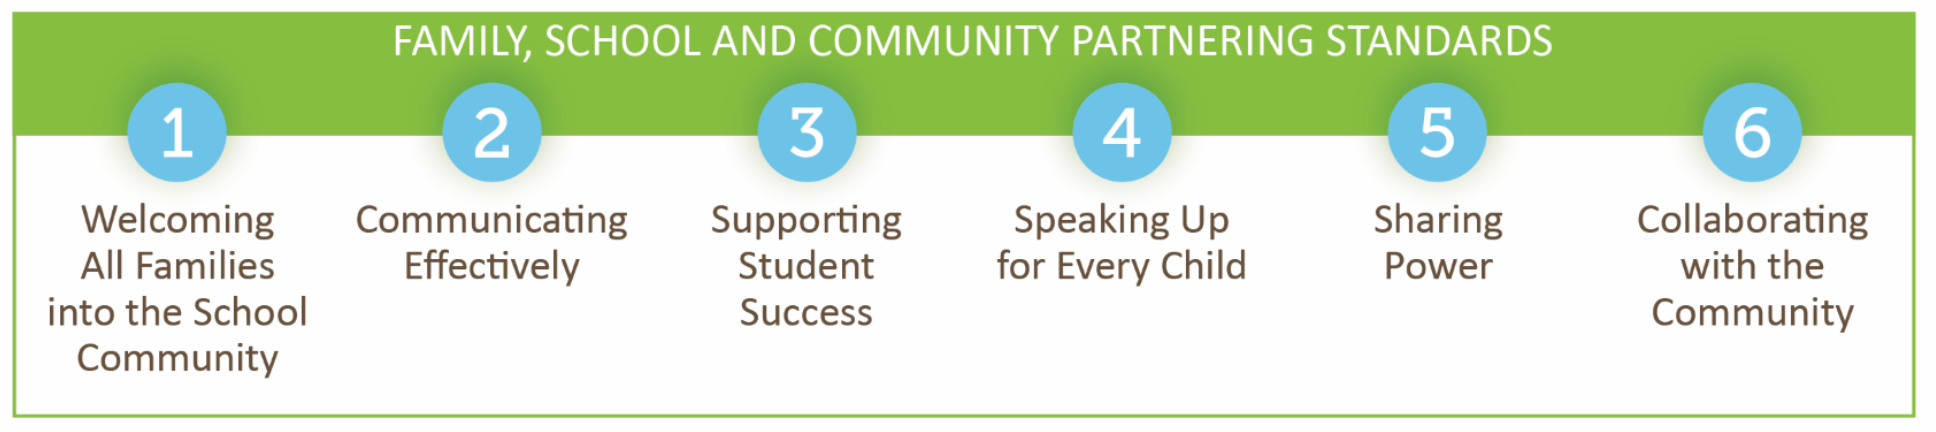 Family, School, and Community Partnering Standards- 1. Welcoming all families into the school community 2. Communicating effectively 3. Supporting student success 4. Speaking up for every child 5. Sharing power 6. Collaborating with the community